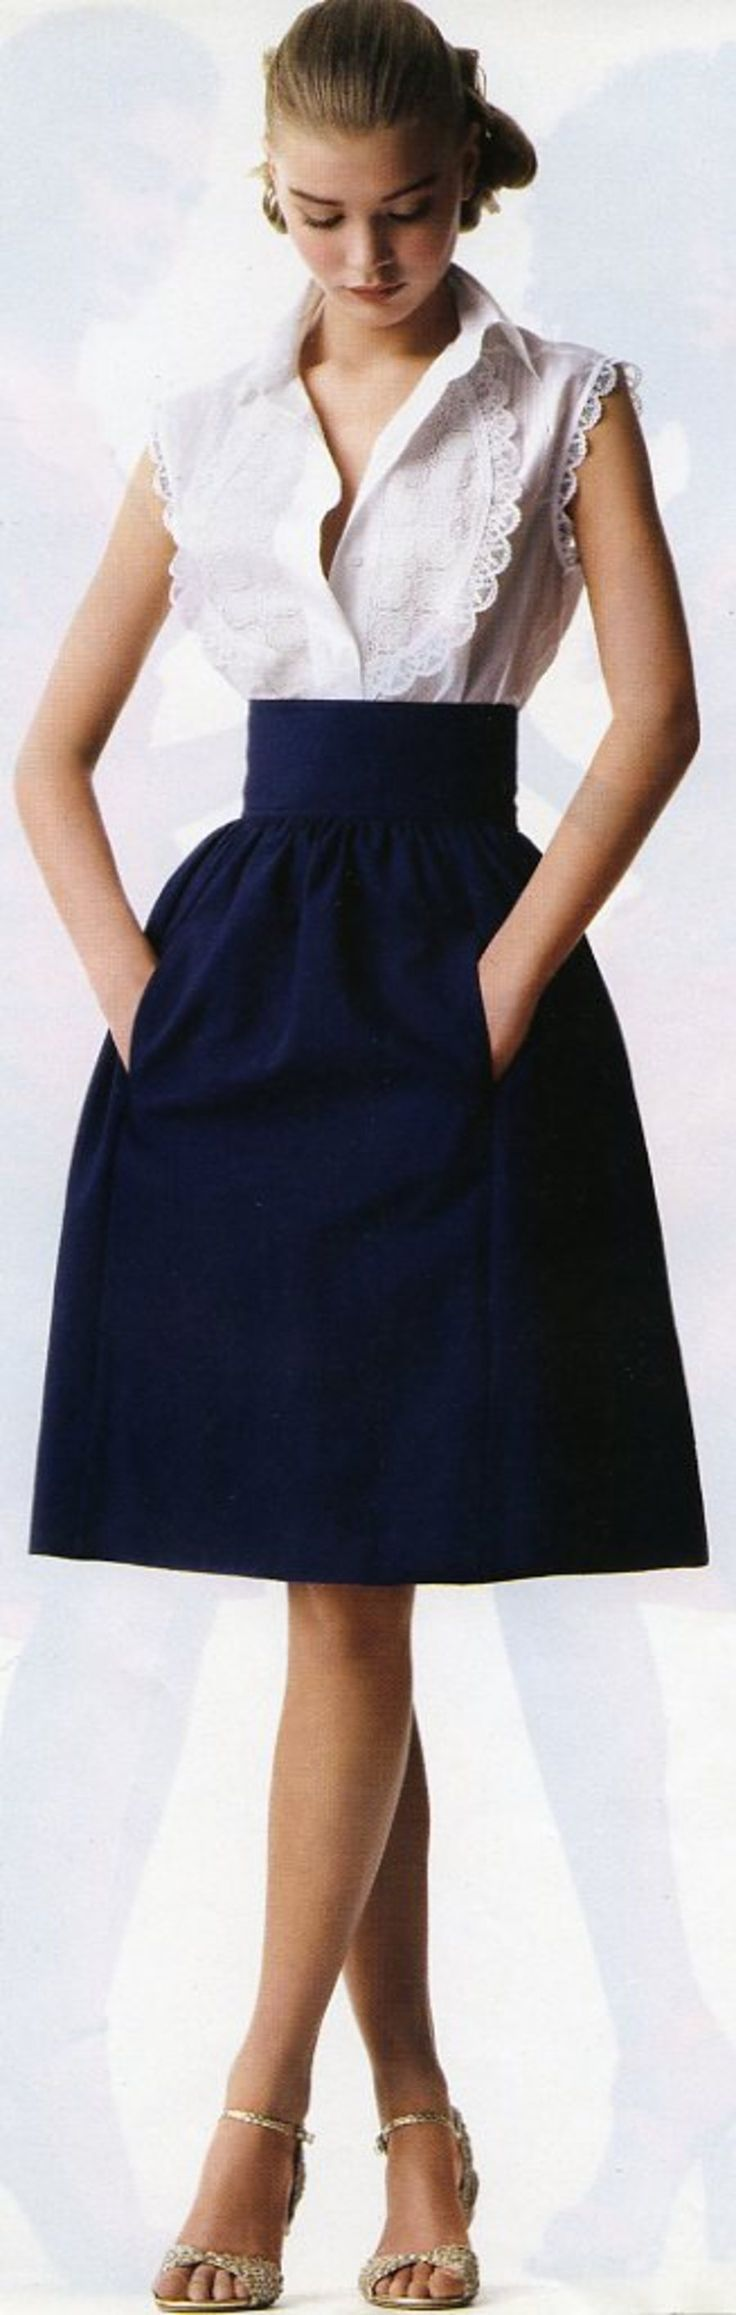 This is the shape of dresses or shirt/skirt combos I just love! Cinch at the waist, flowing past the hips, just lovely. <3